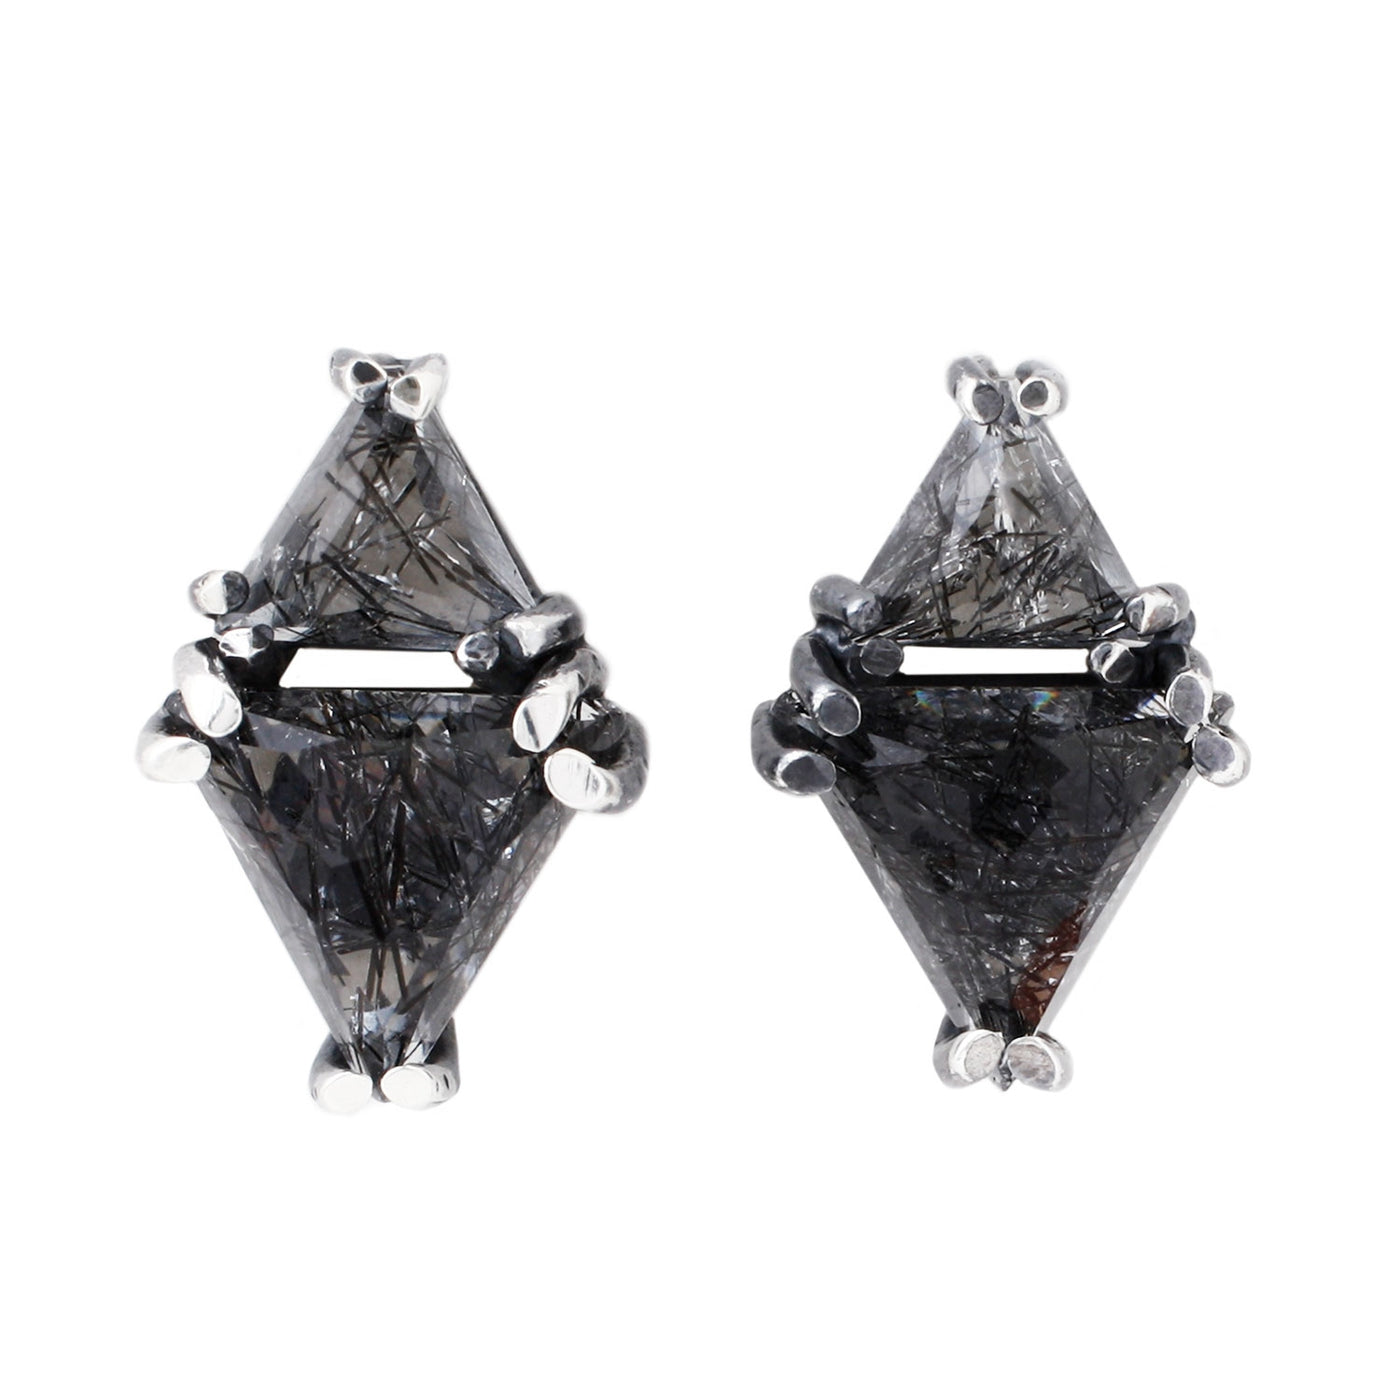 Michael Spirito Double Triangle Studs